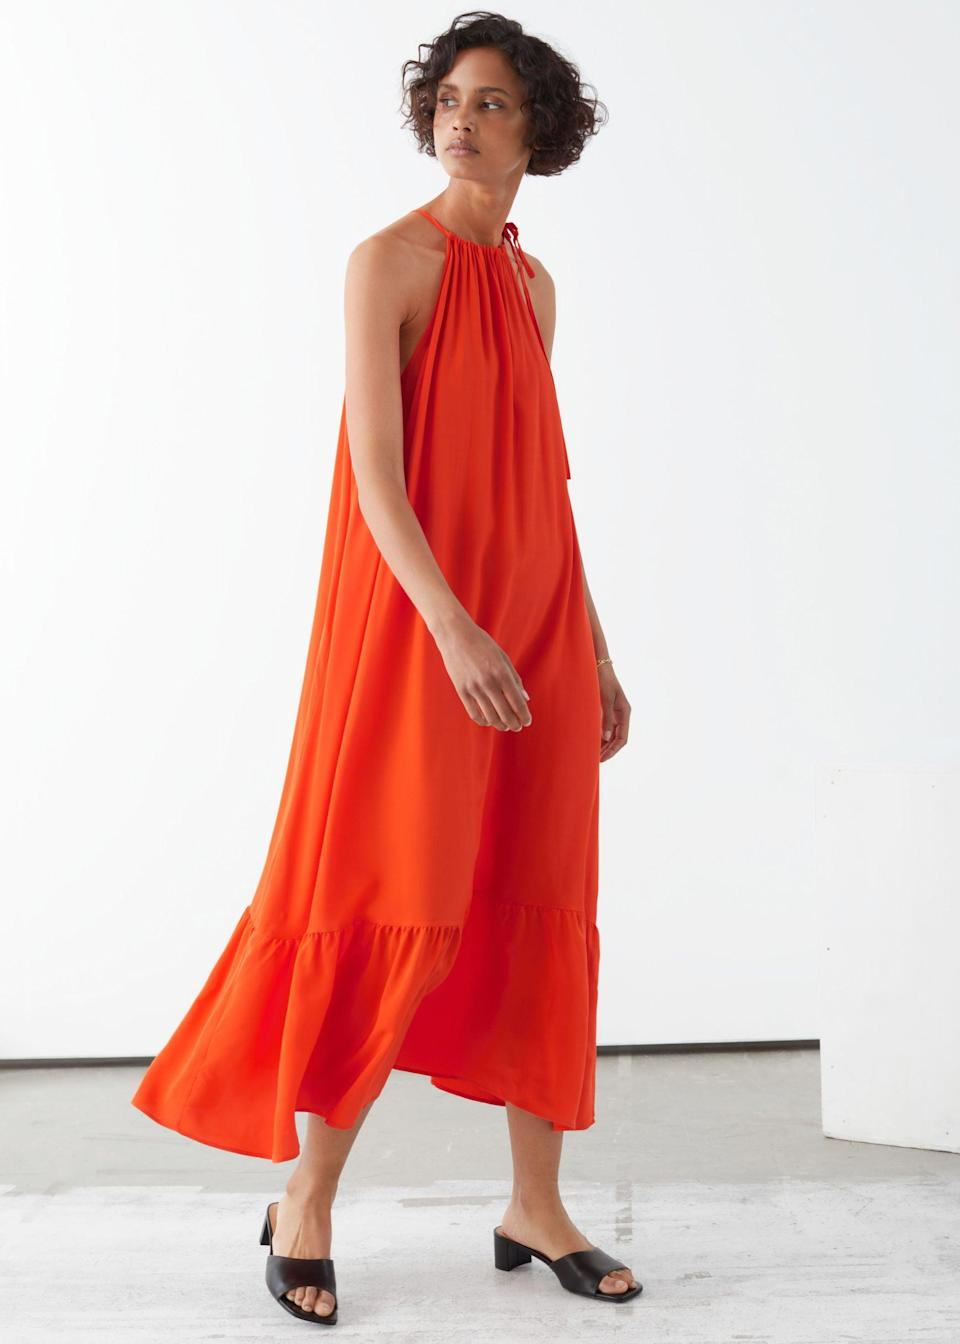 """<br> <br> <strong>& Other Stories</strong> Halterneck A-Line Midi Dress, $, available at <a href=""""https://go.skimresources.com/?id=30283X879131&url=https%3A%2F%2Fwww.stories.com%2Fen_usd%2Fclothing%2Fdresses%2Fmidi-dresses%2Fproduct.halterneck-a-line-midi-dress-orange.0880755001.html"""" rel=""""nofollow noopener"""" target=""""_blank"""" data-ylk=""""slk:& Other Stories"""" class=""""link rapid-noclick-resp"""">& Other Stories</a>"""